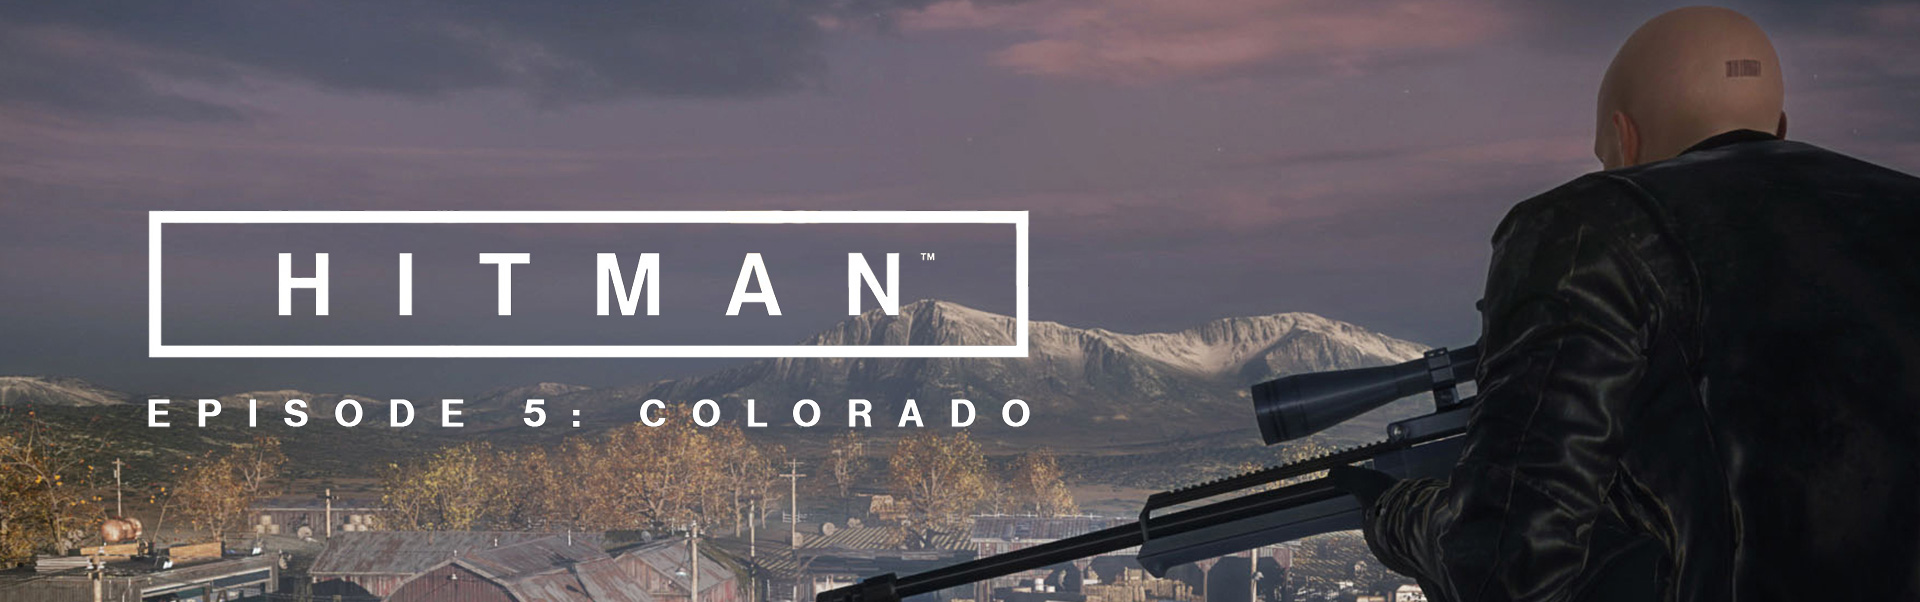 hitman-episode-5-colorado-vgprofessional-review-1